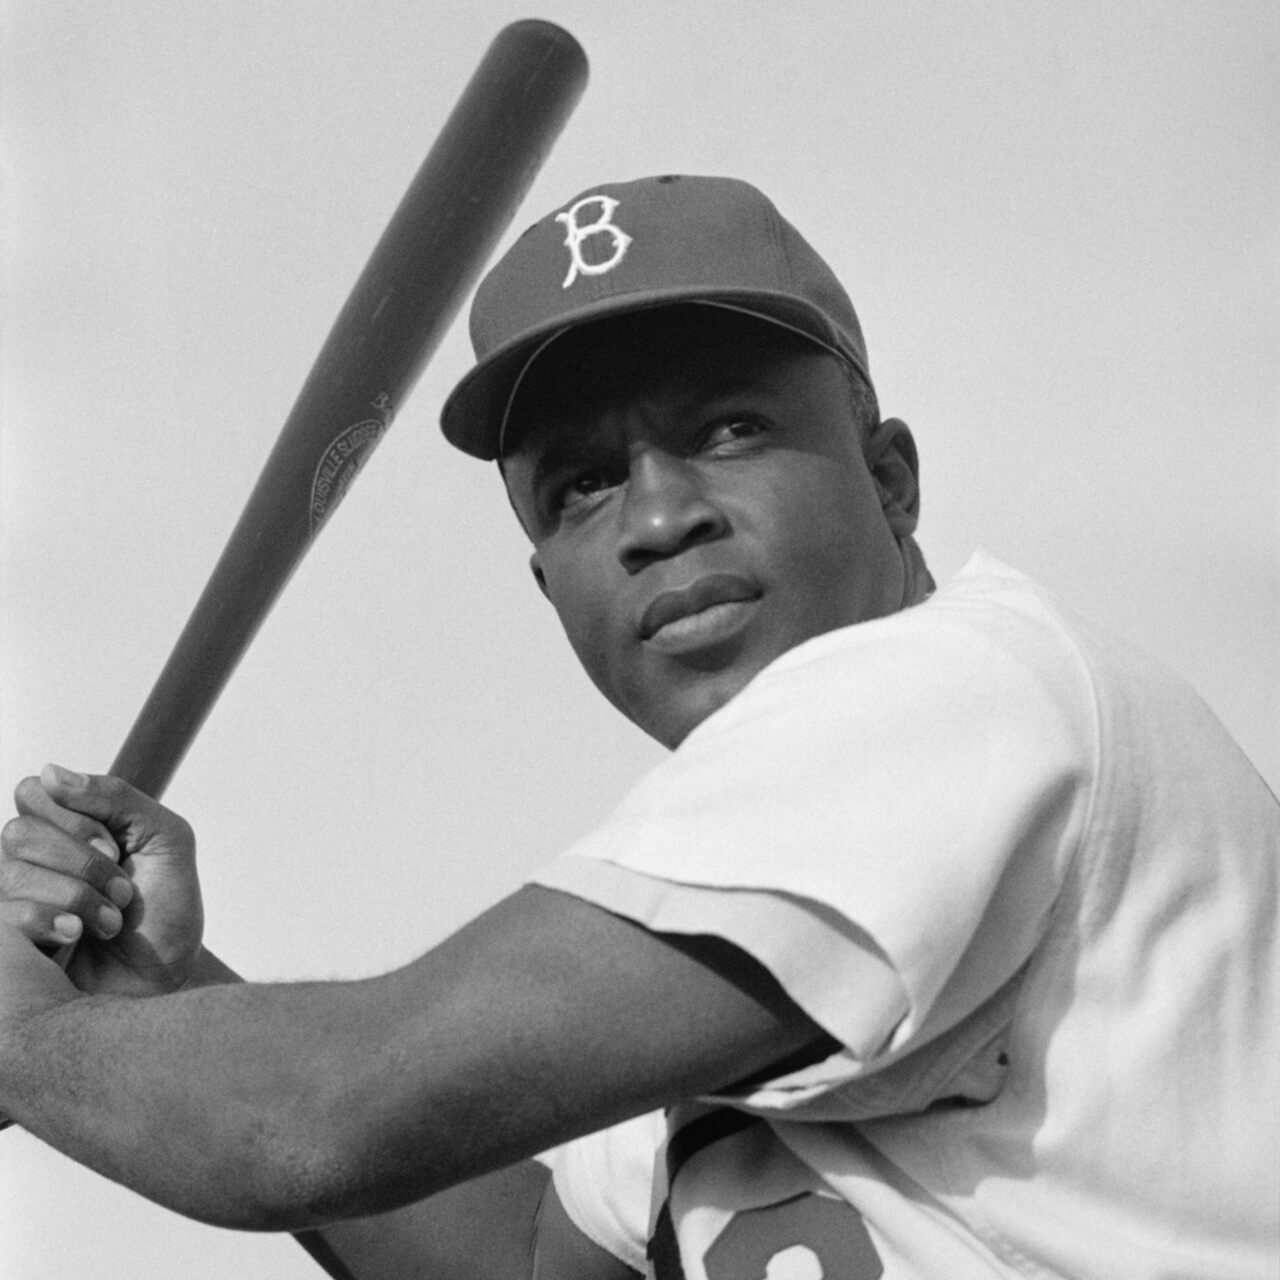 Robinson may have feared that his achievements as a player would be overshadowed by his achievements in civil rights.